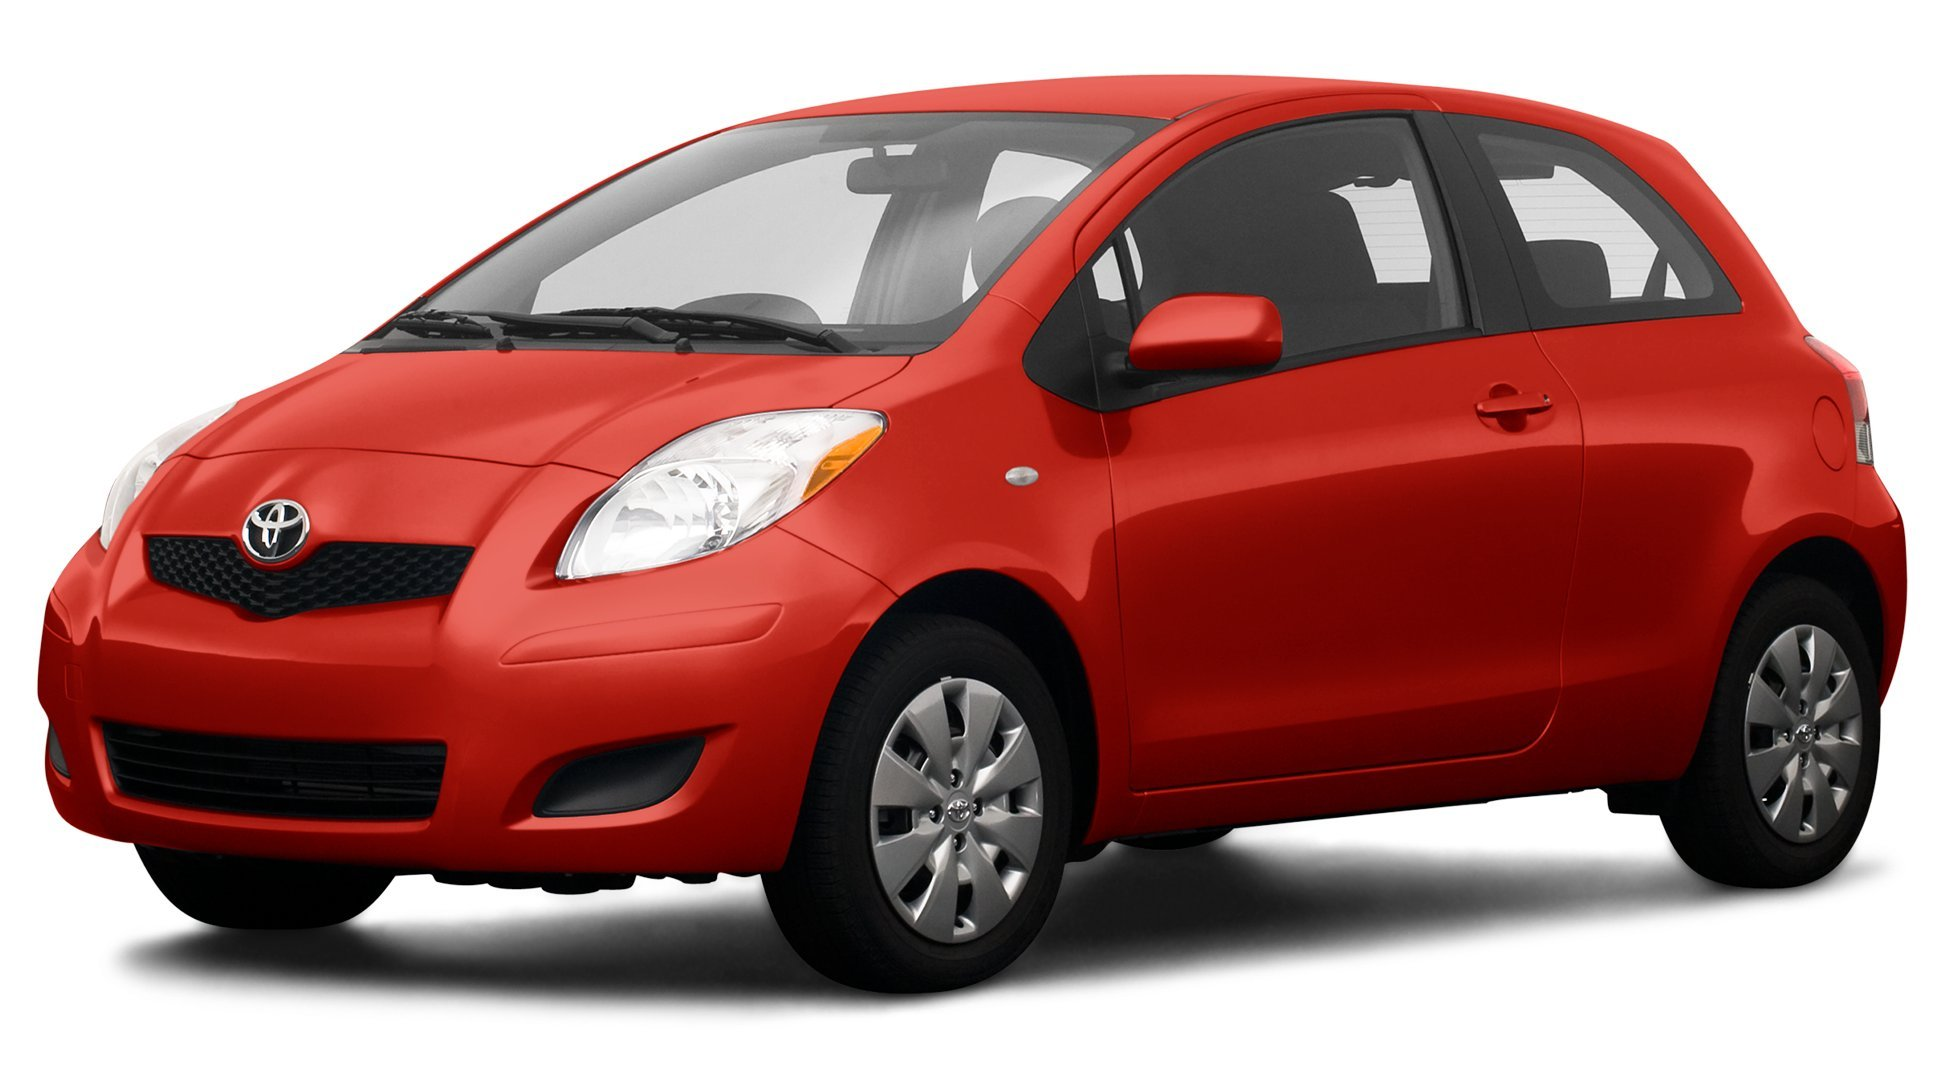 2009 toyota yaris reviews images and specs vehicles. Black Bedroom Furniture Sets. Home Design Ideas